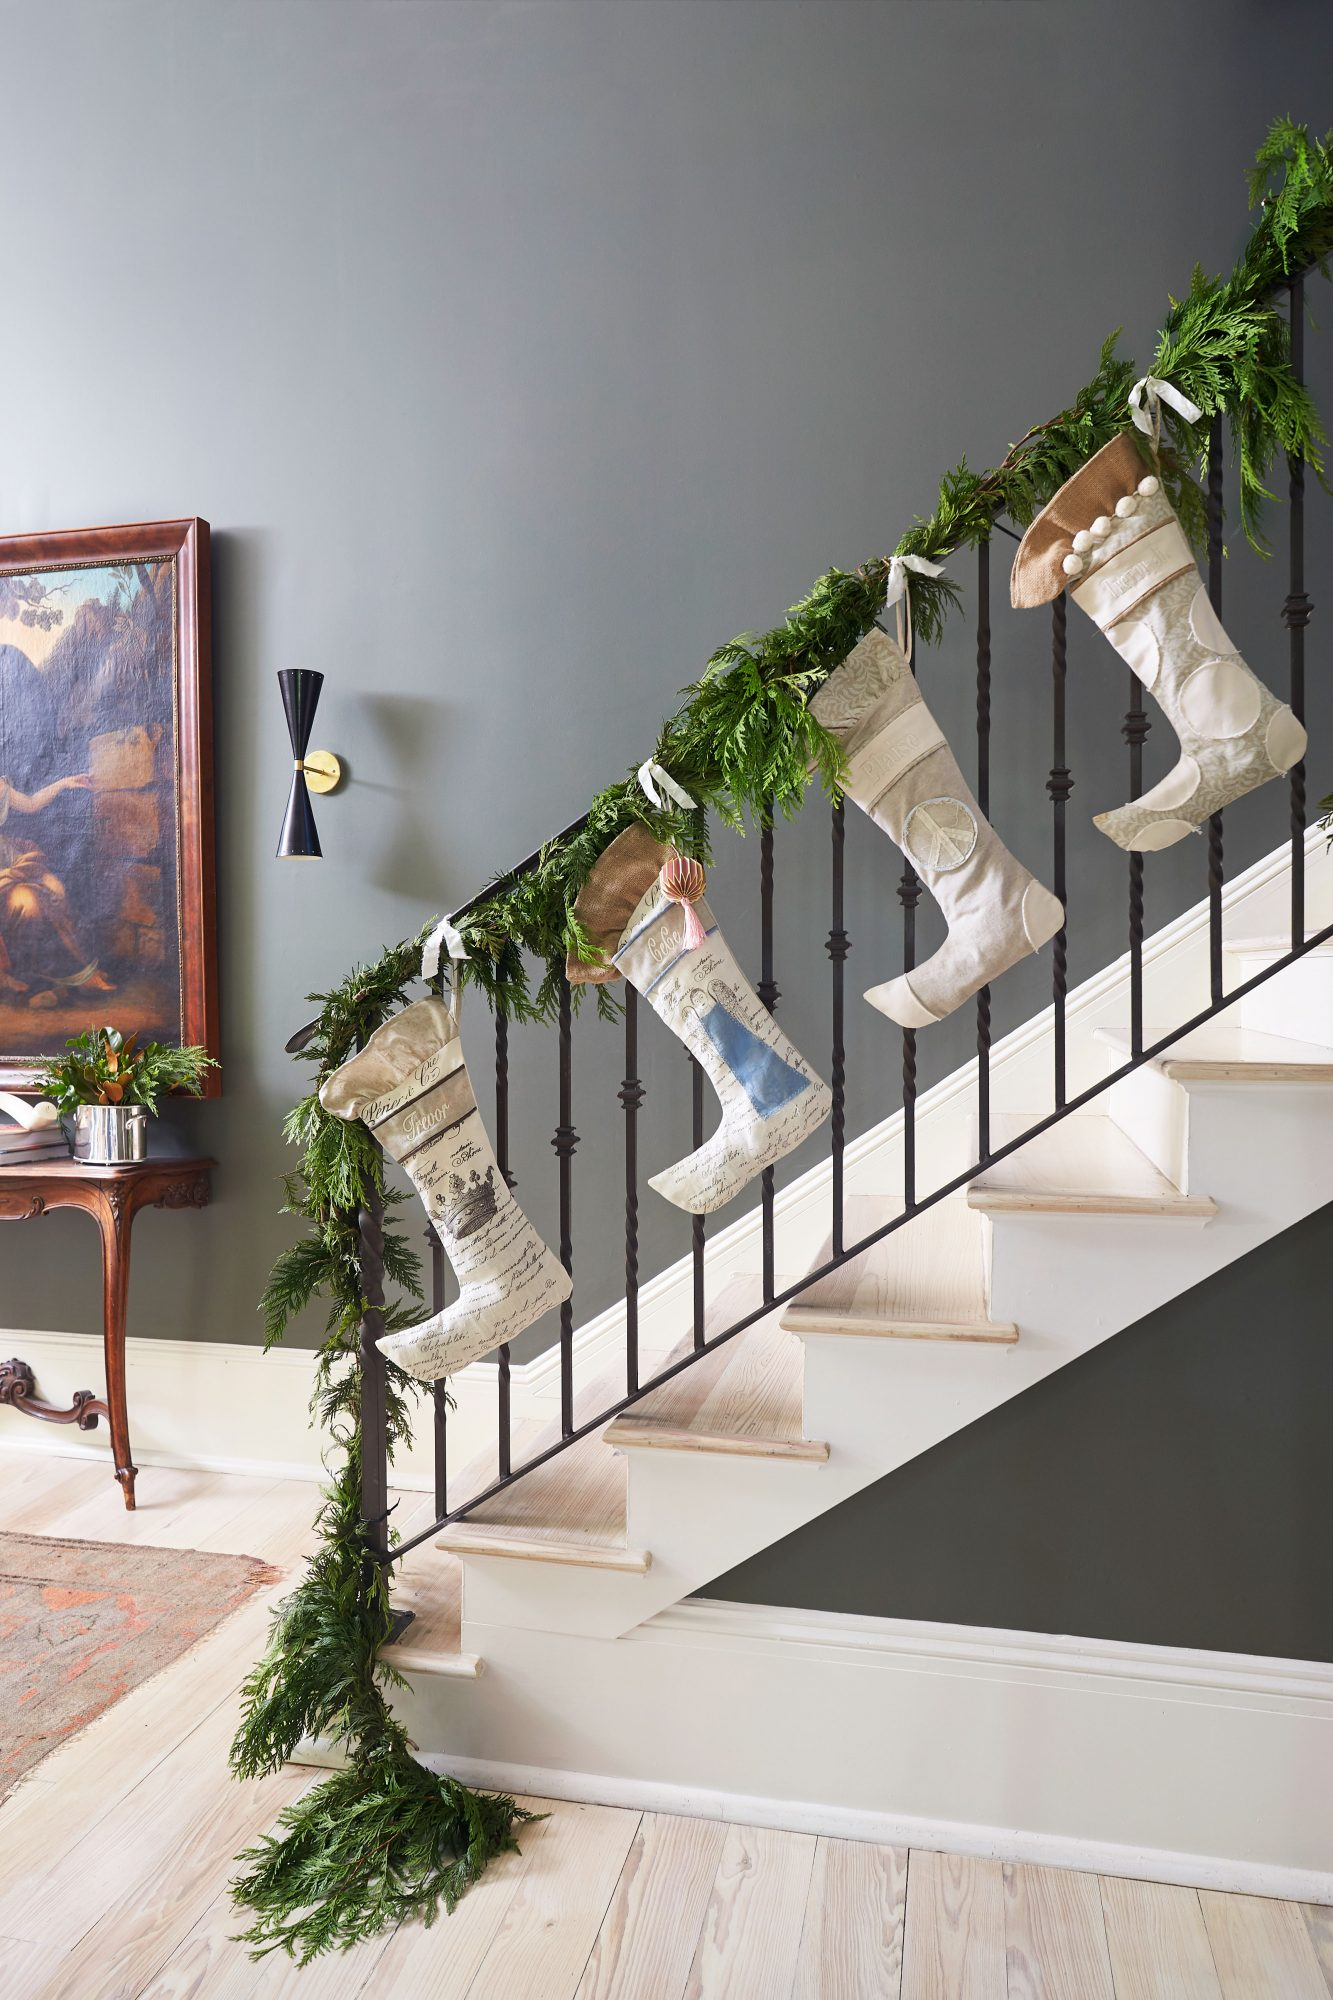 Cece Calhoun New Orleans House at Christmas Stocking on the Stairs